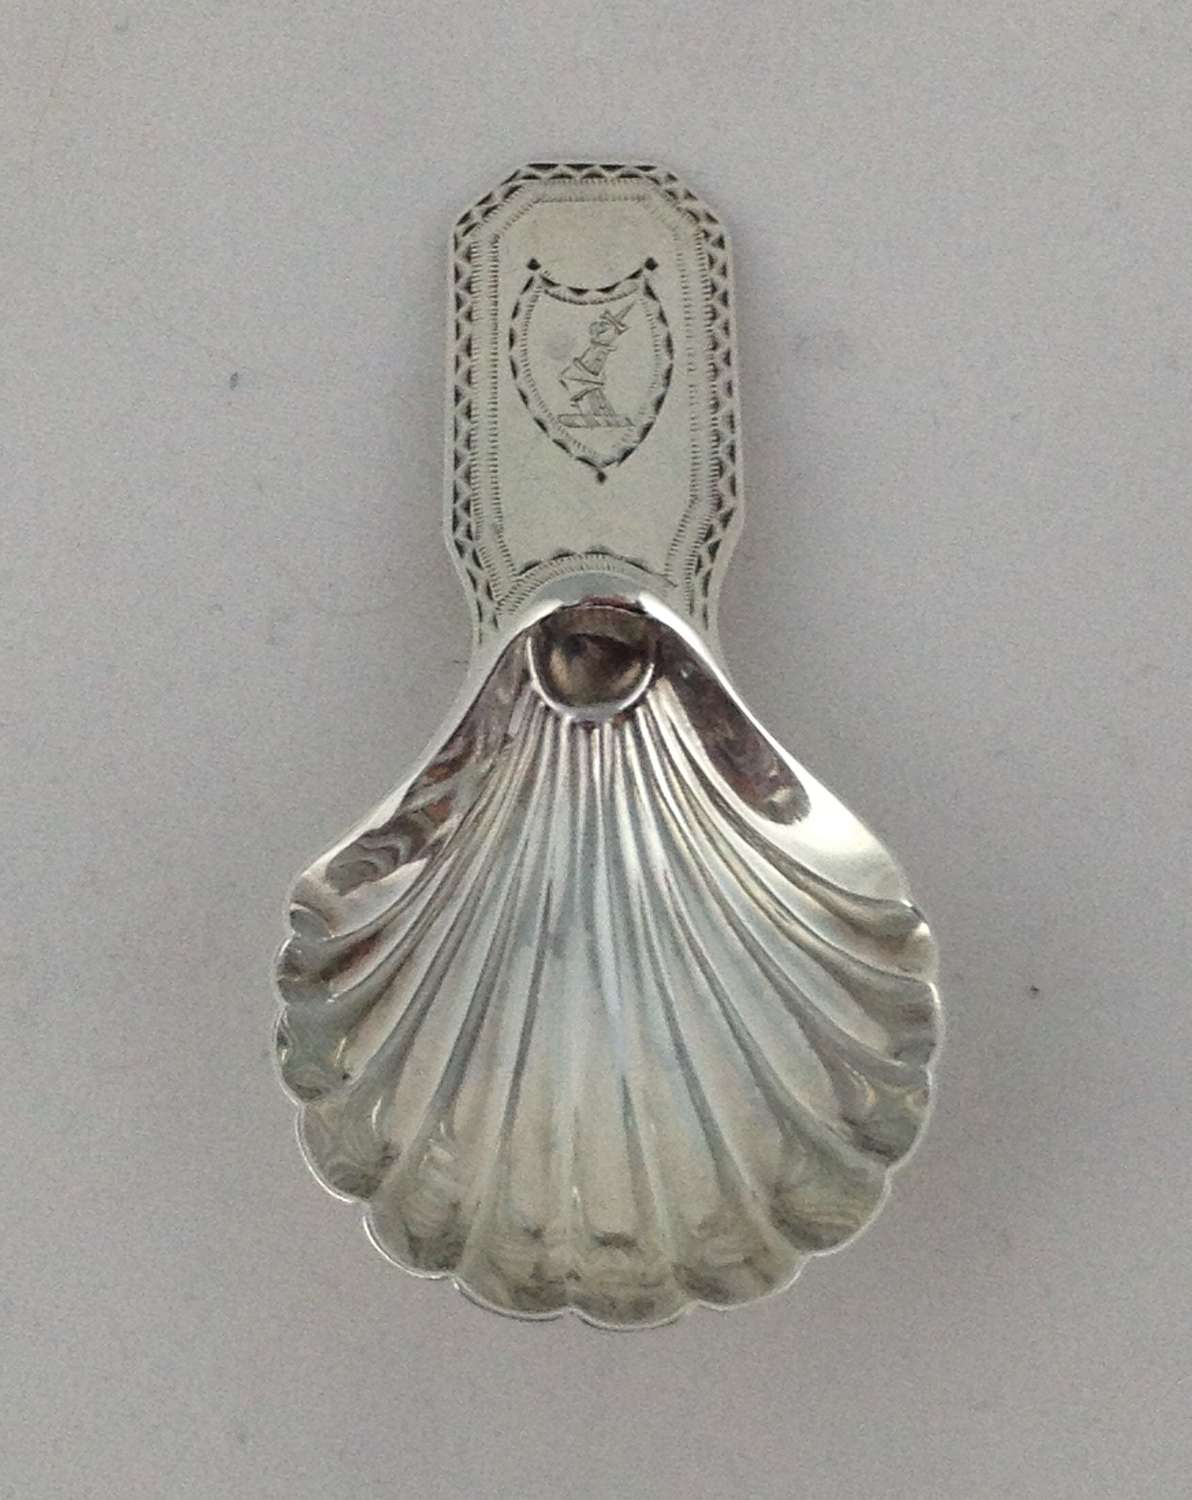 George III Silver Scallop Shell Caddy Spoon 1790 Smith & Fearn